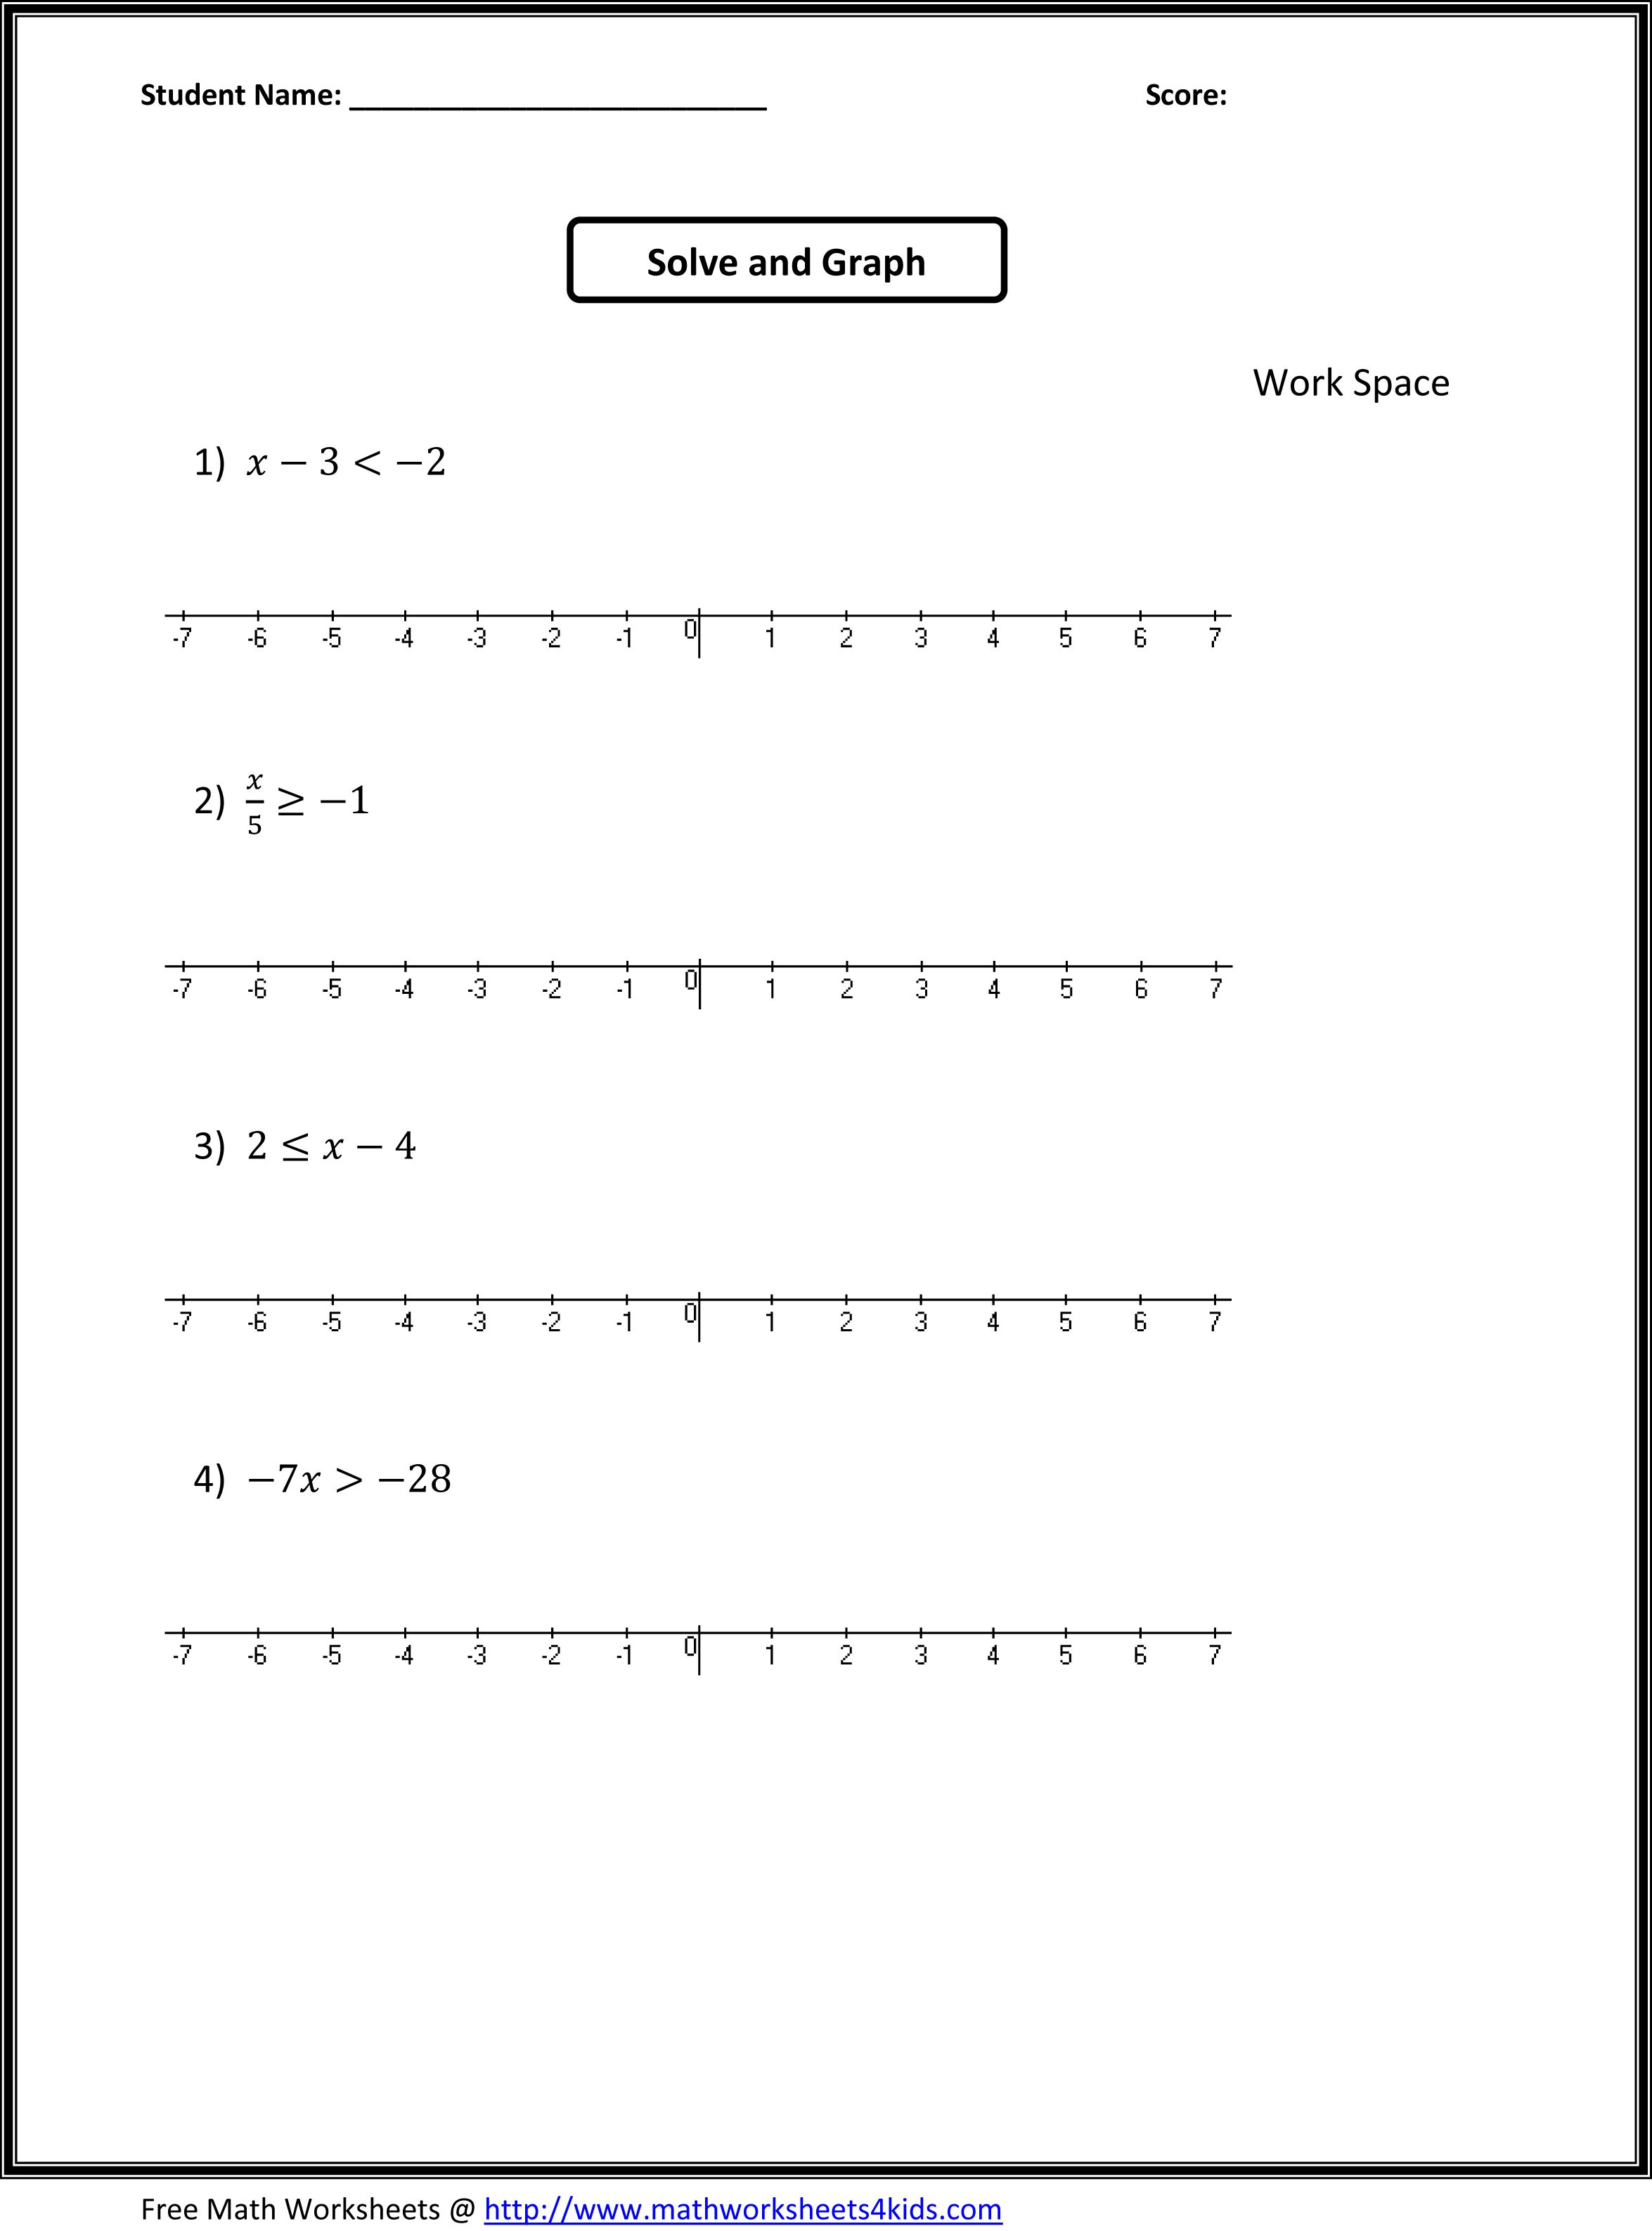 Worksheets Free Printable 7th Grade Worksheets 7th grade algebra worksheets math places to worksheets